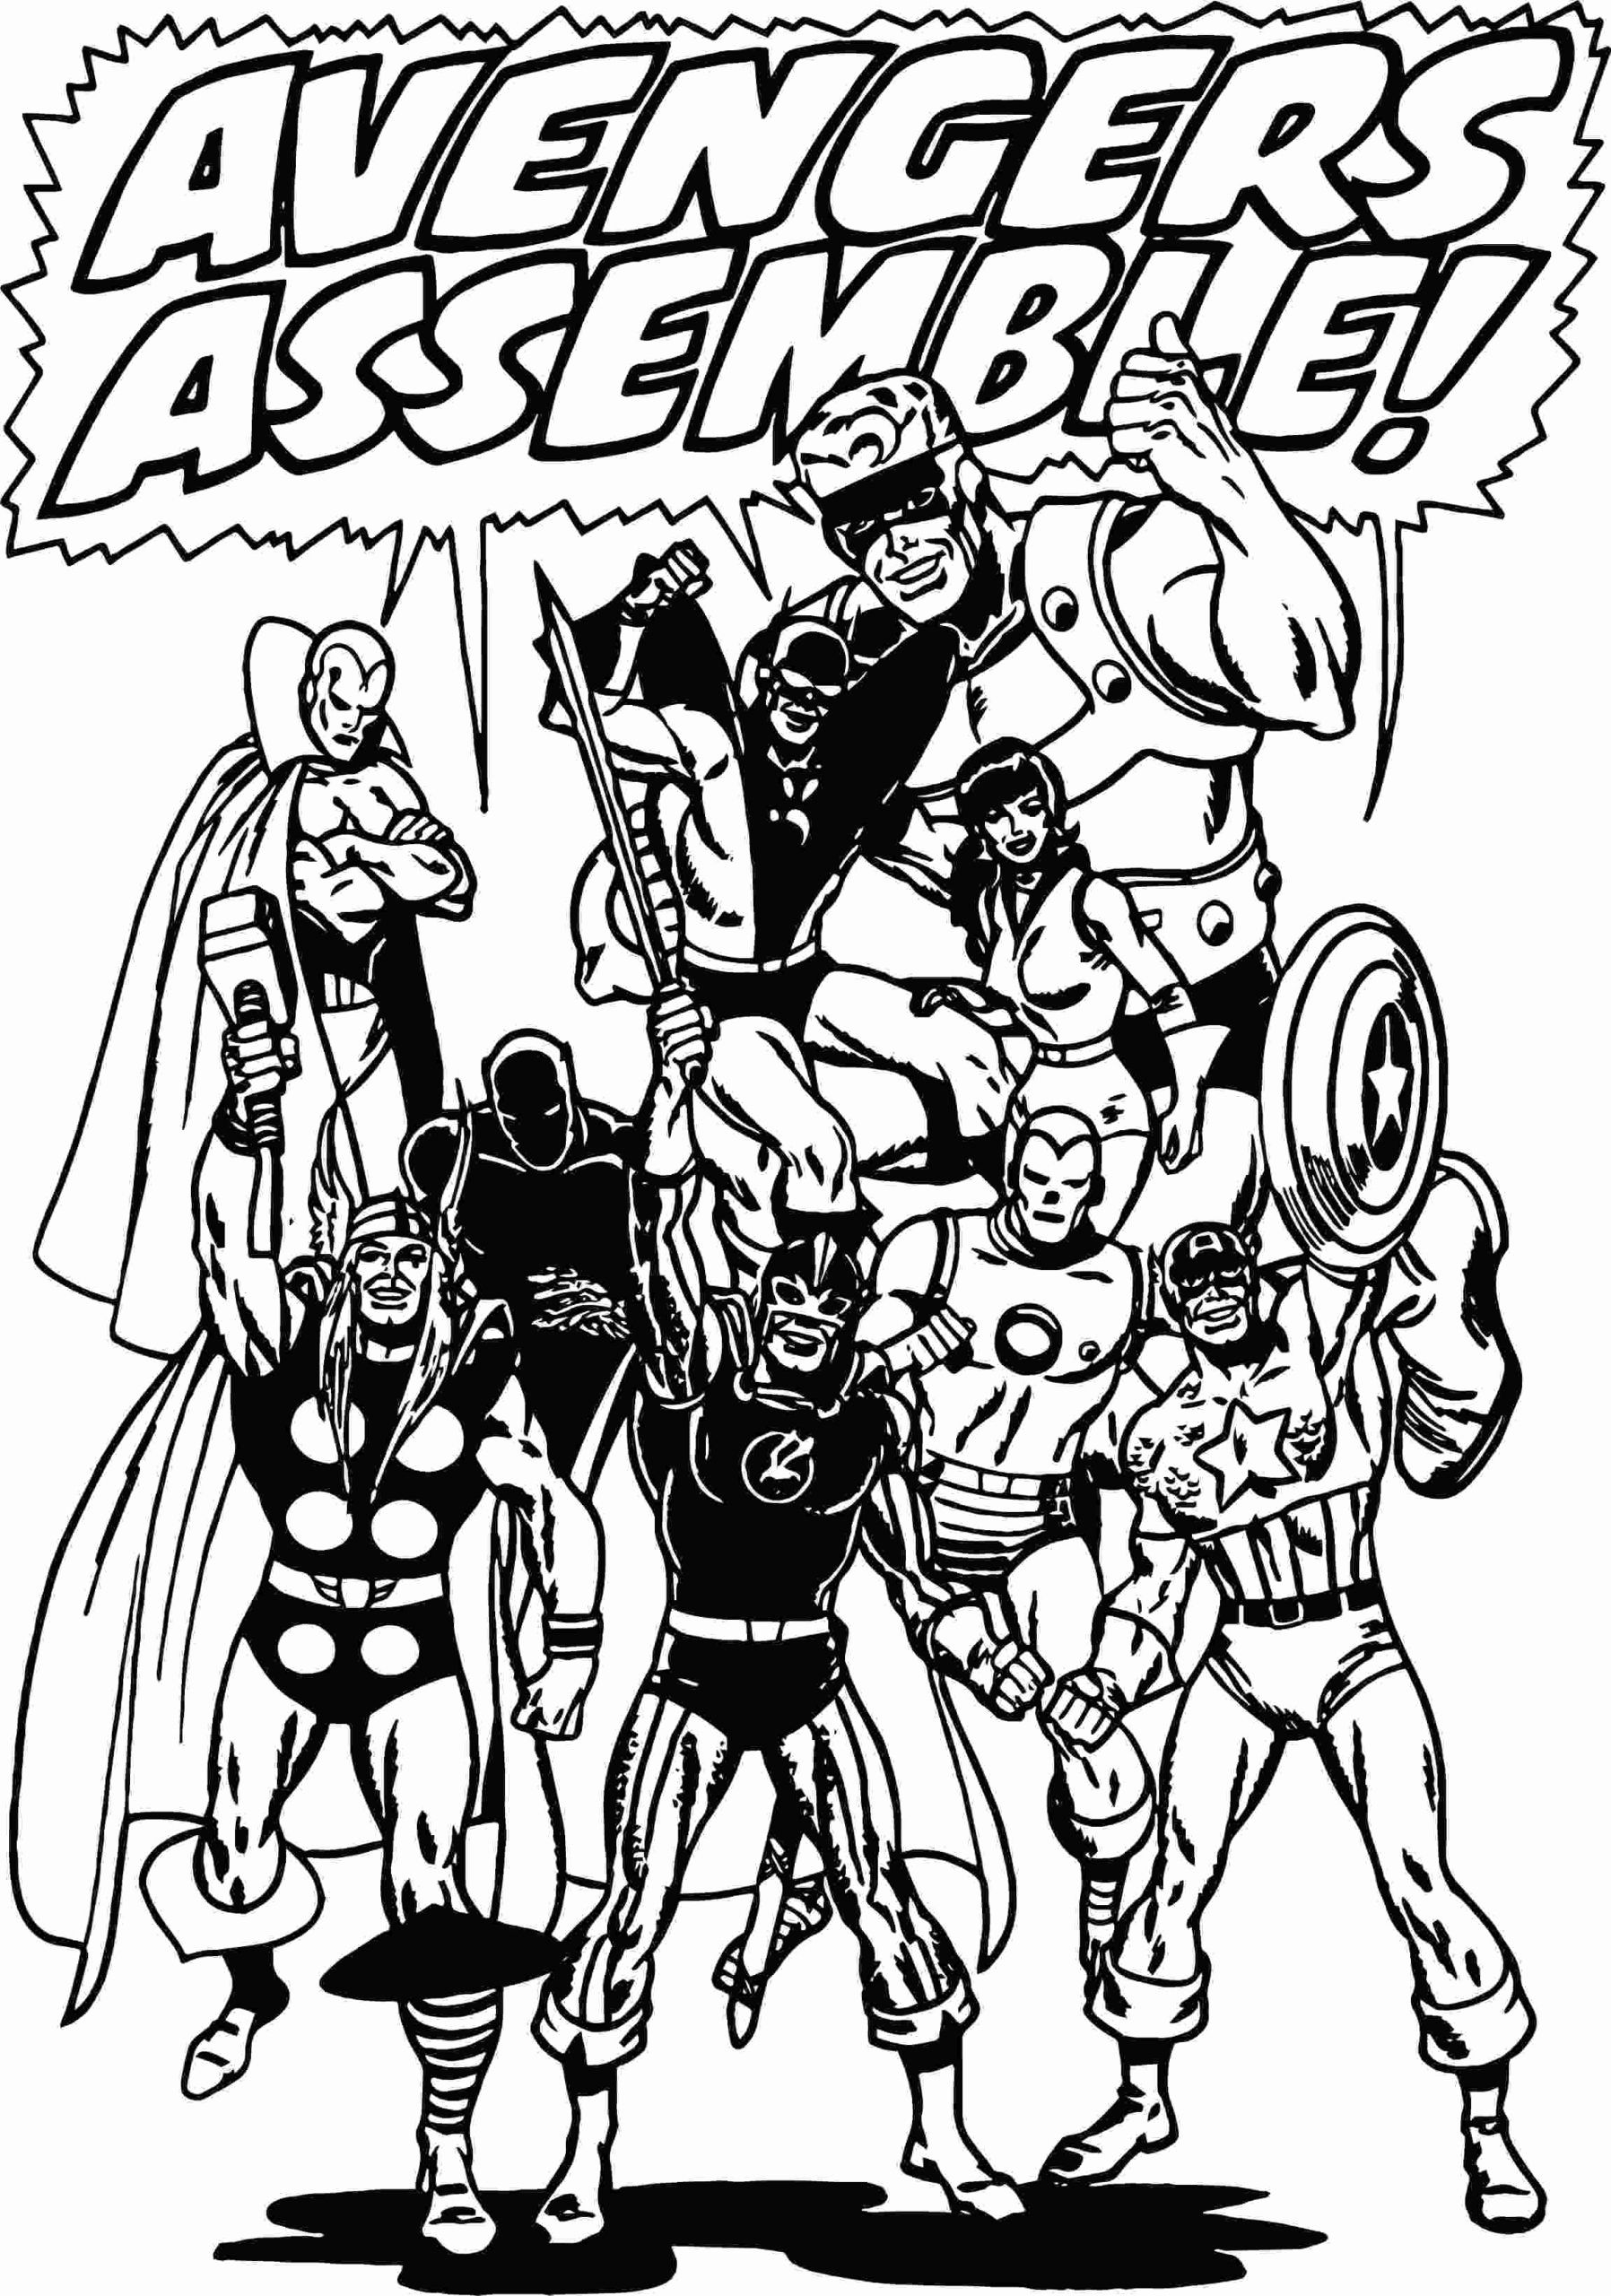 Printable Coloring Pages Kids Avengers Coloring Pages For Kids Coloring Pages For Kids In 2020 Avengers Coloring Avengers Coloring Pages Coloring Pages